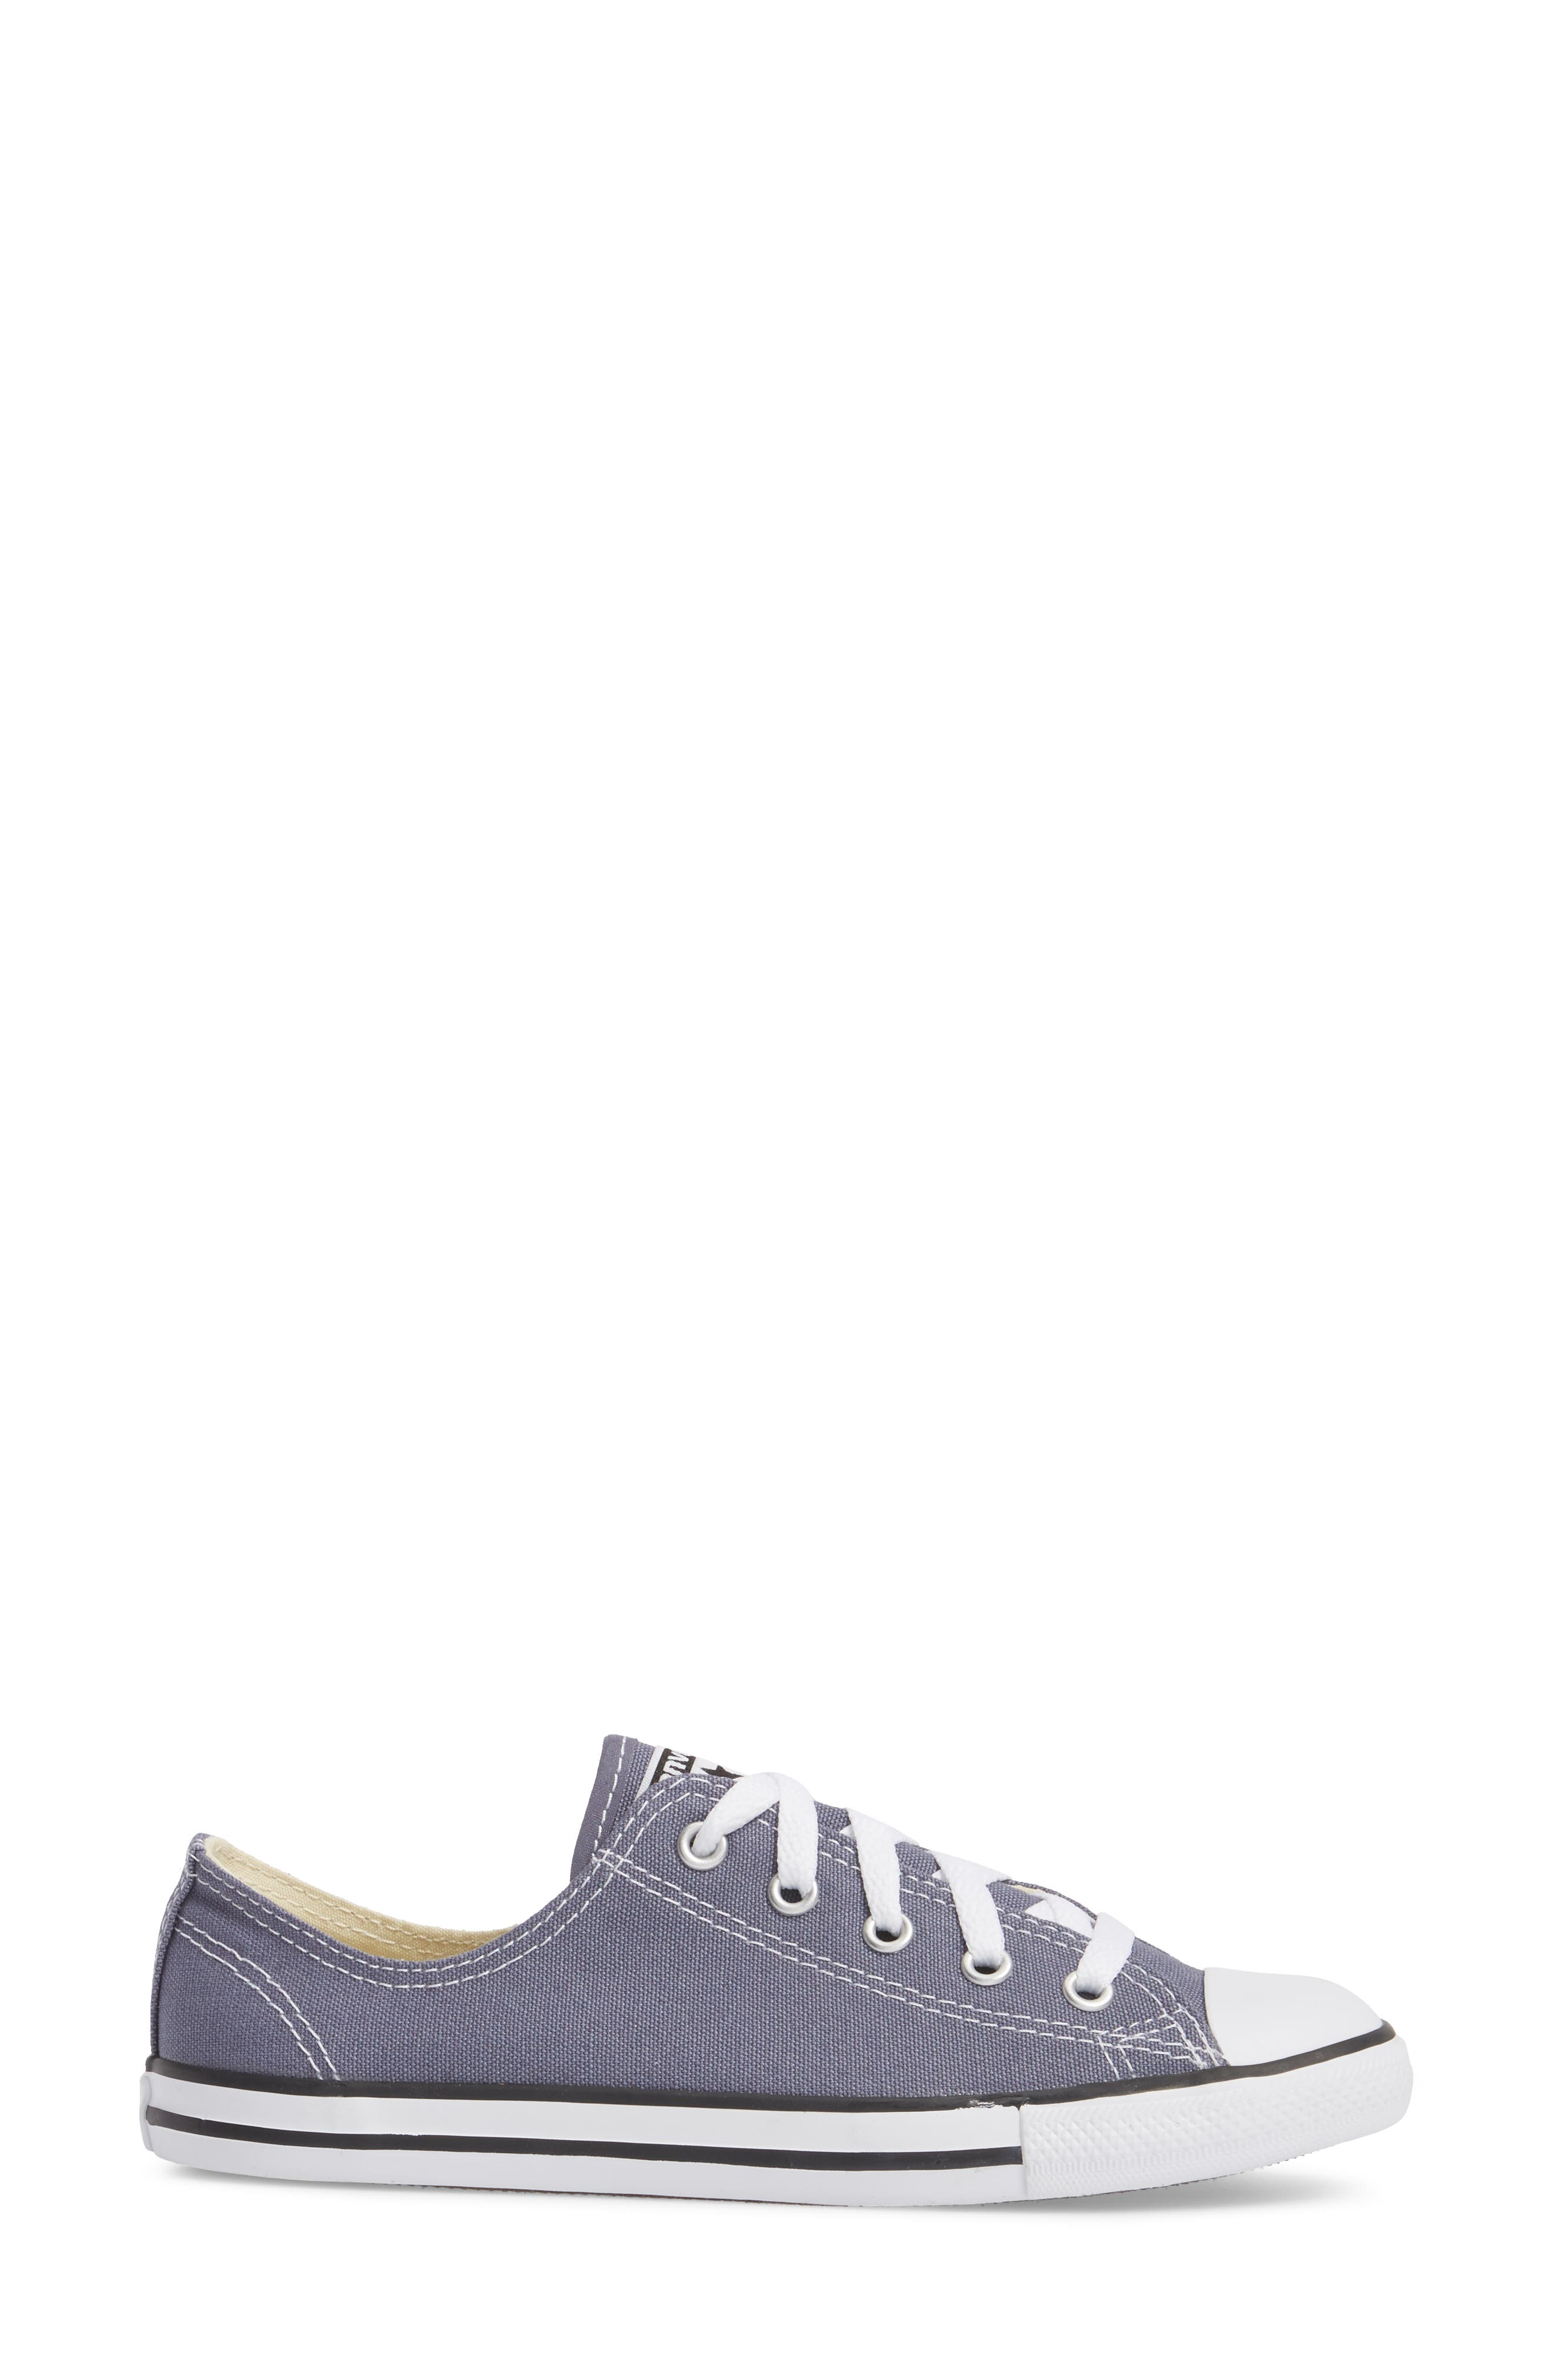 Chuck Taylor<sup>®</sup> All Star<sup>®</sup> Dainty Ox Low Top Sneaker,                             Alternate thumbnail 3, color,                             023